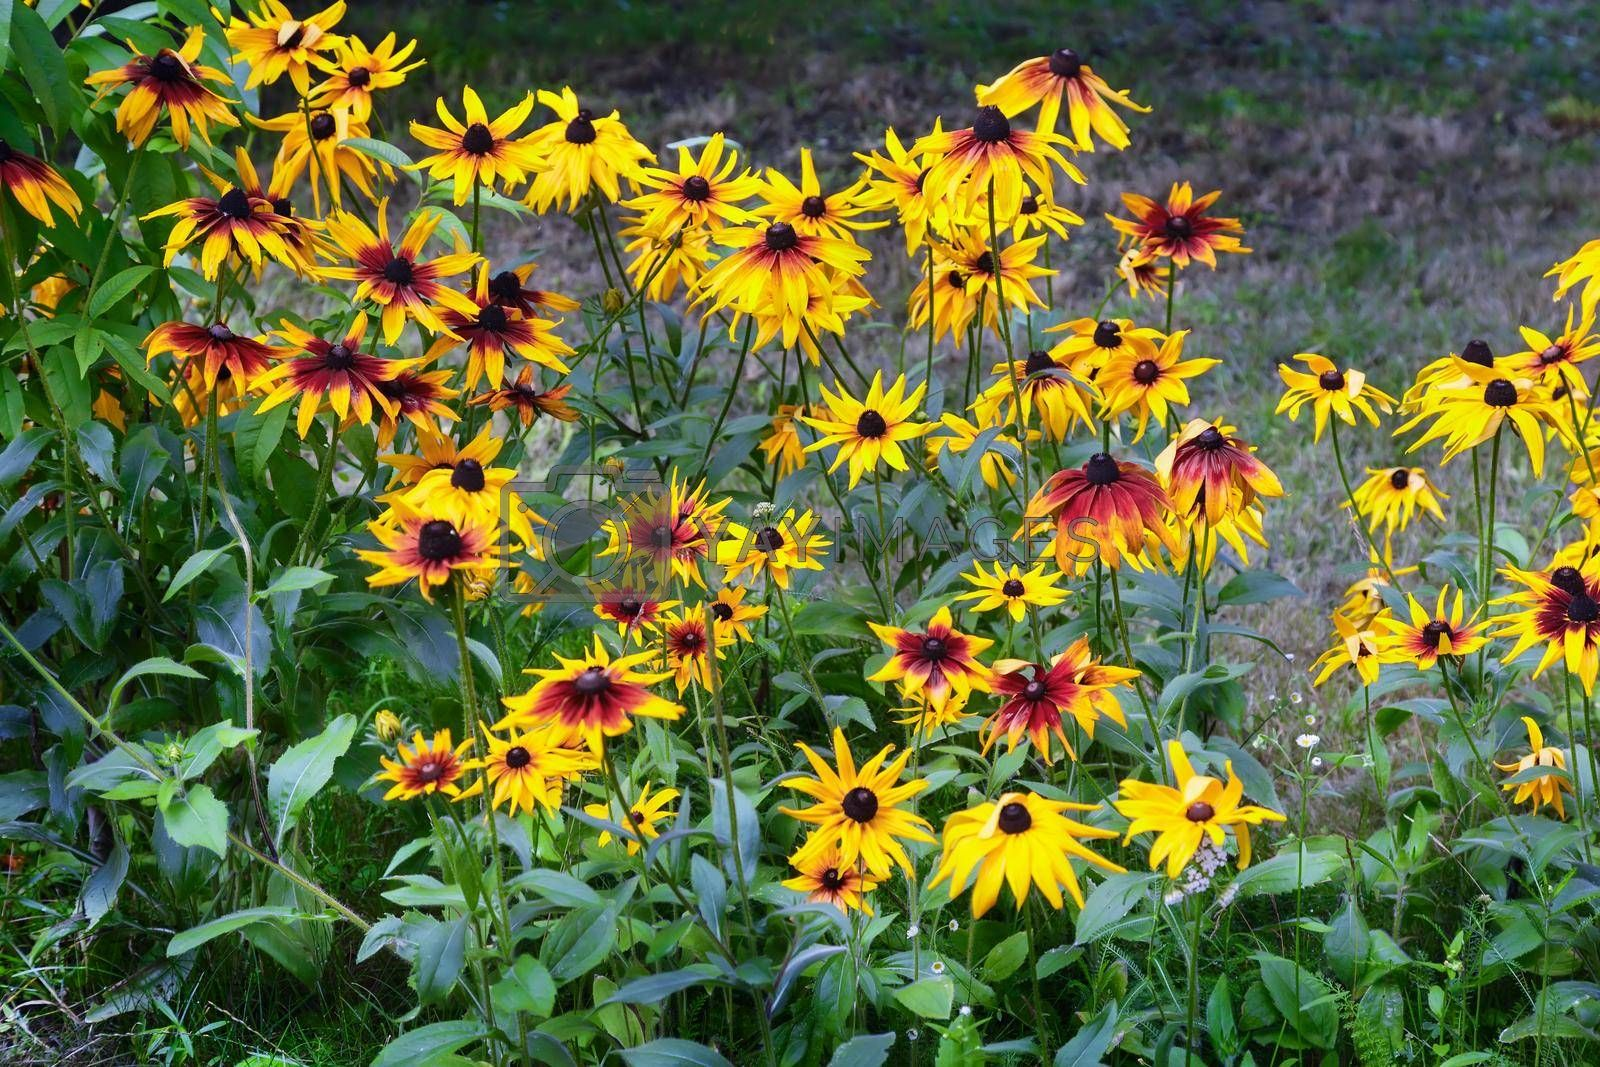 Beautiful large yellow with red flowers rudbeckia in the garden on a background of green leaves.